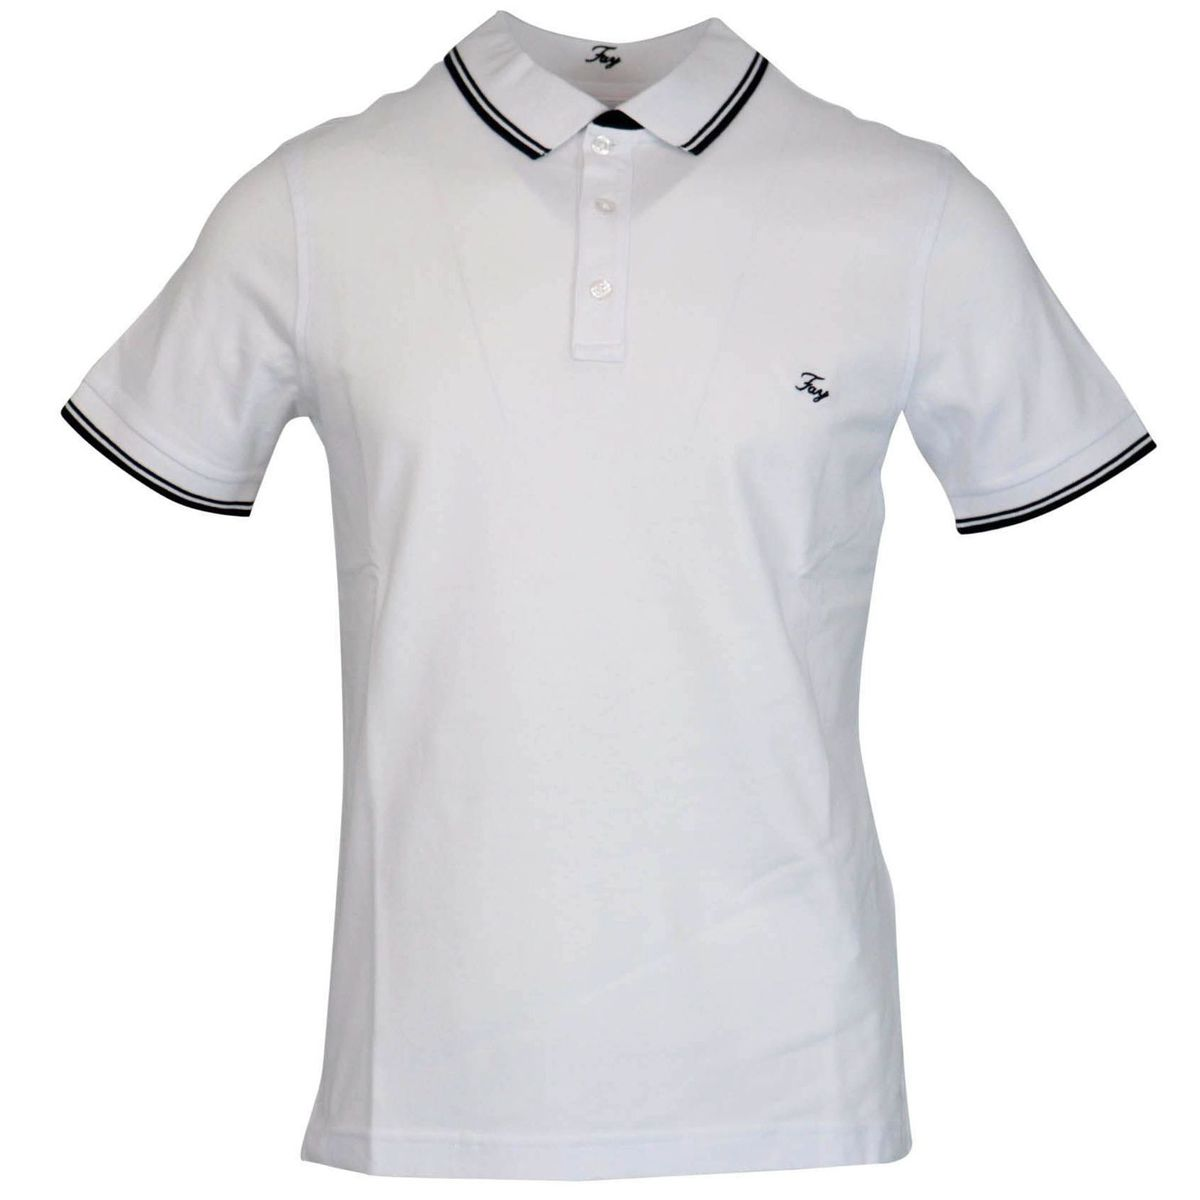 Three button stretch cotton polo shirt with logo embroidery White Fay